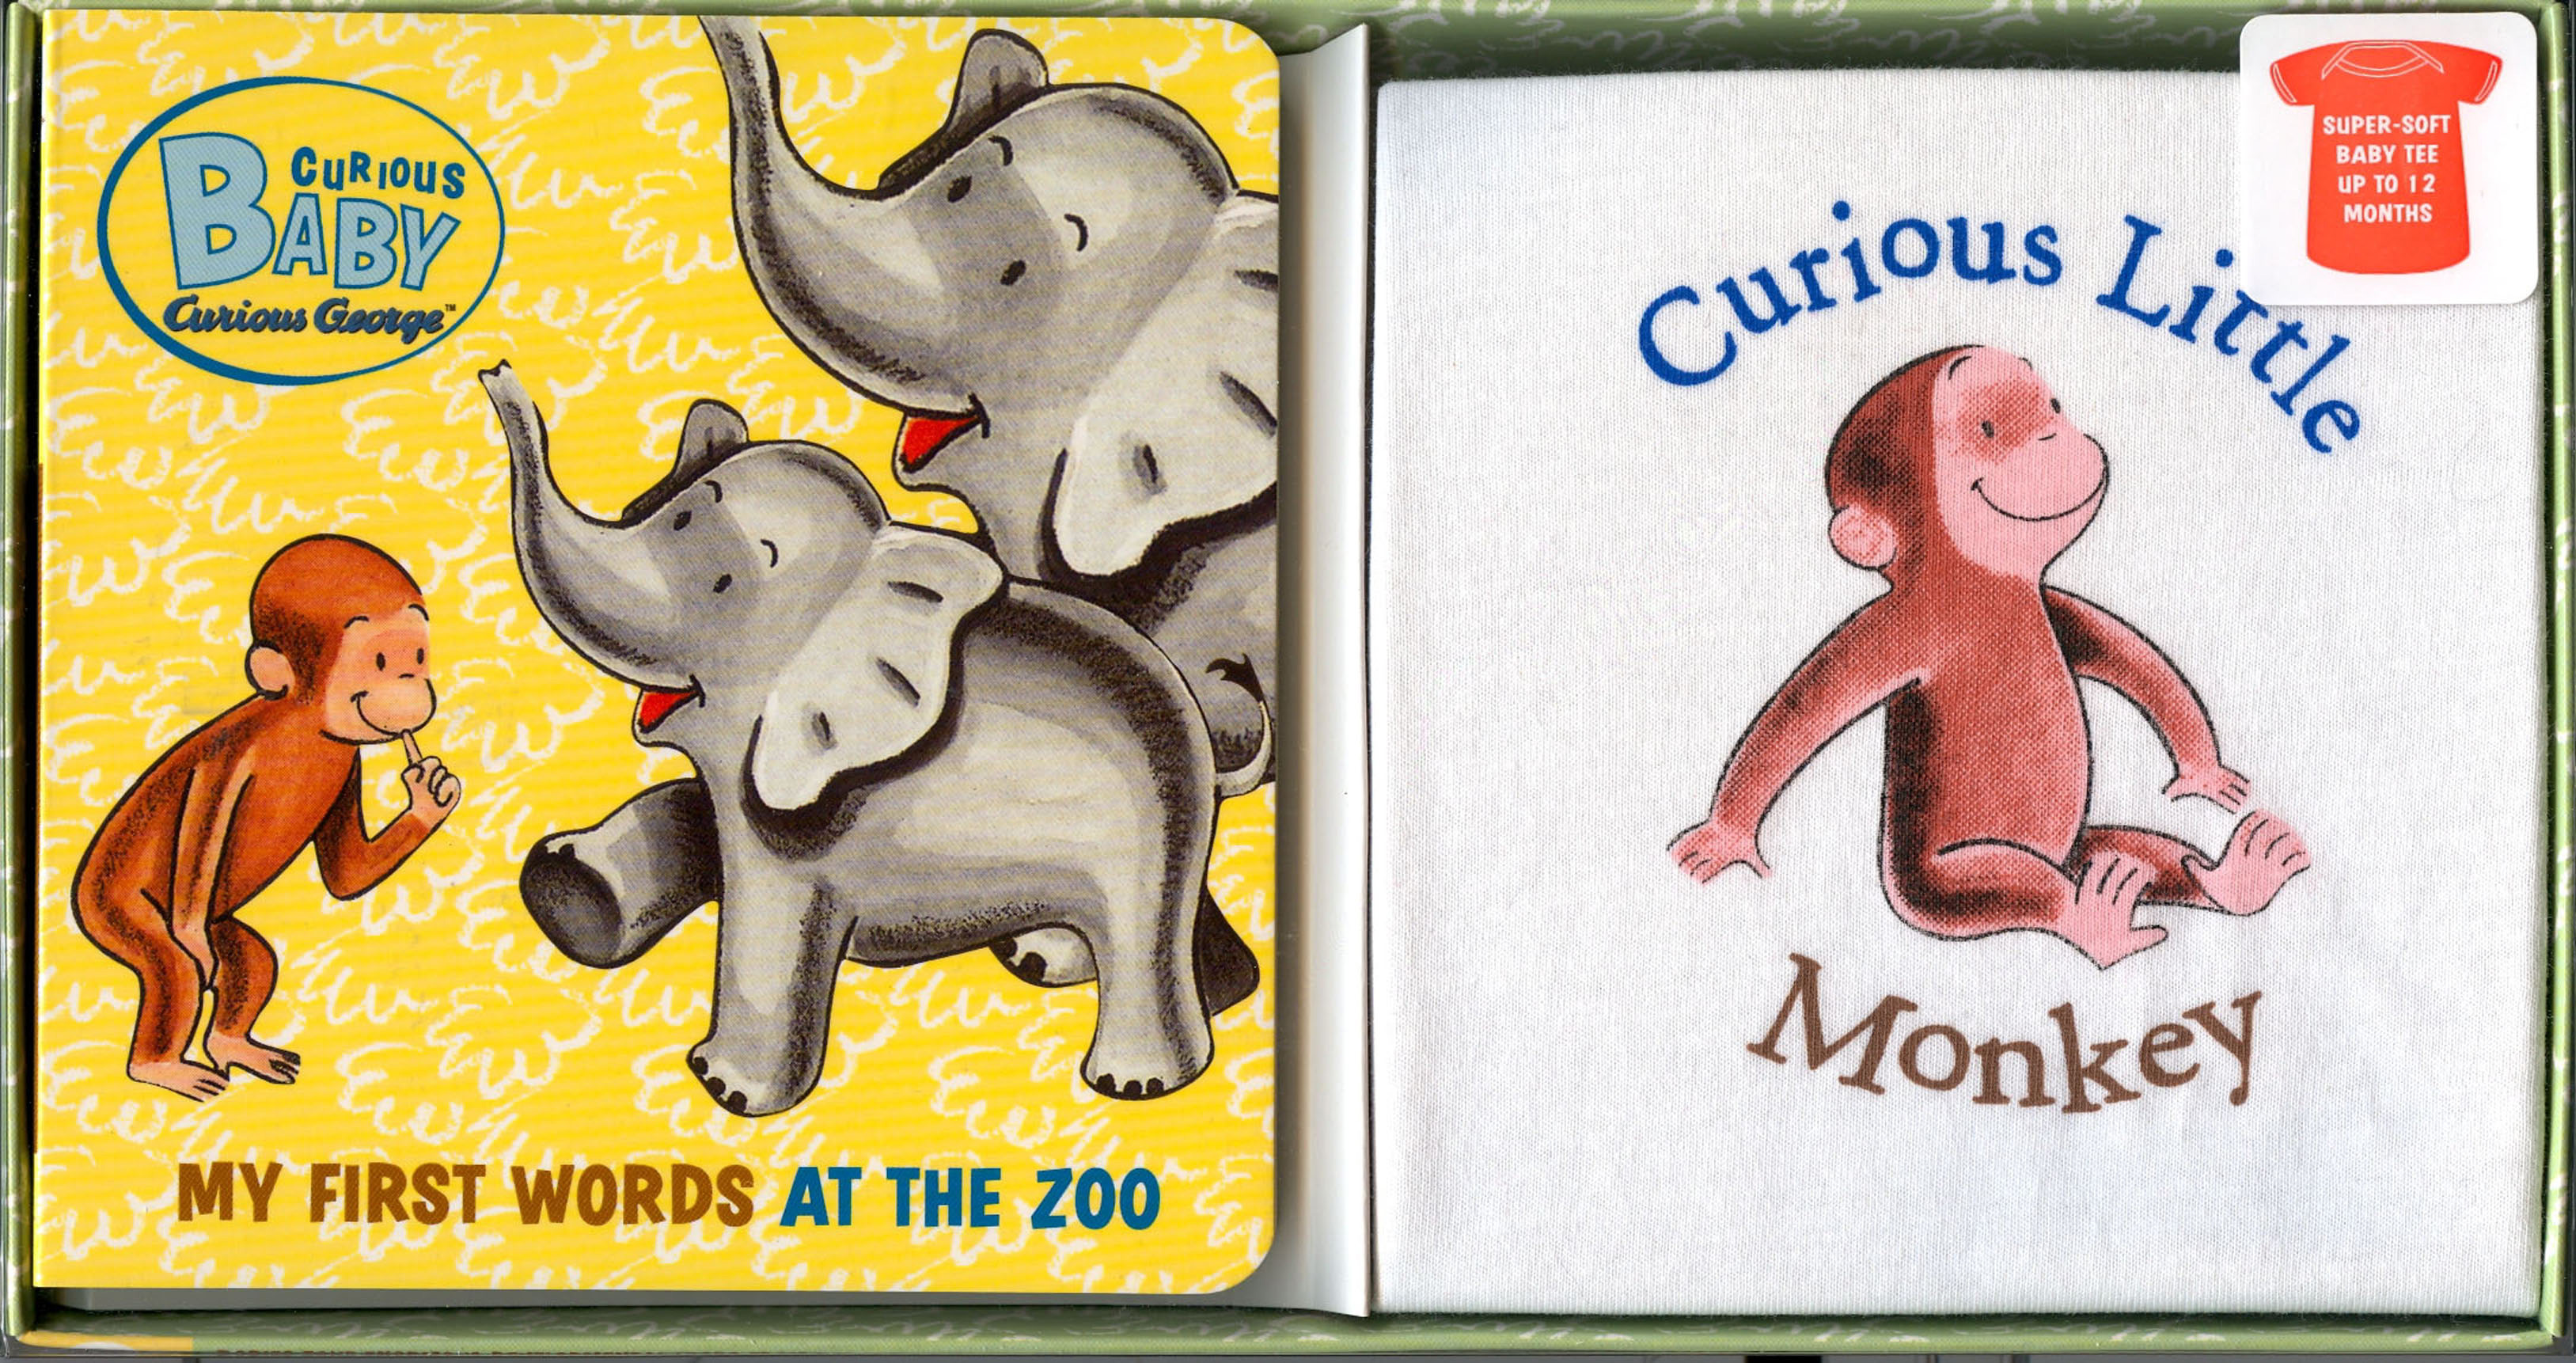 Curious Baby My First Words at the Zoo Gift Set (Curious George Book & T-shirt)-9780618999538